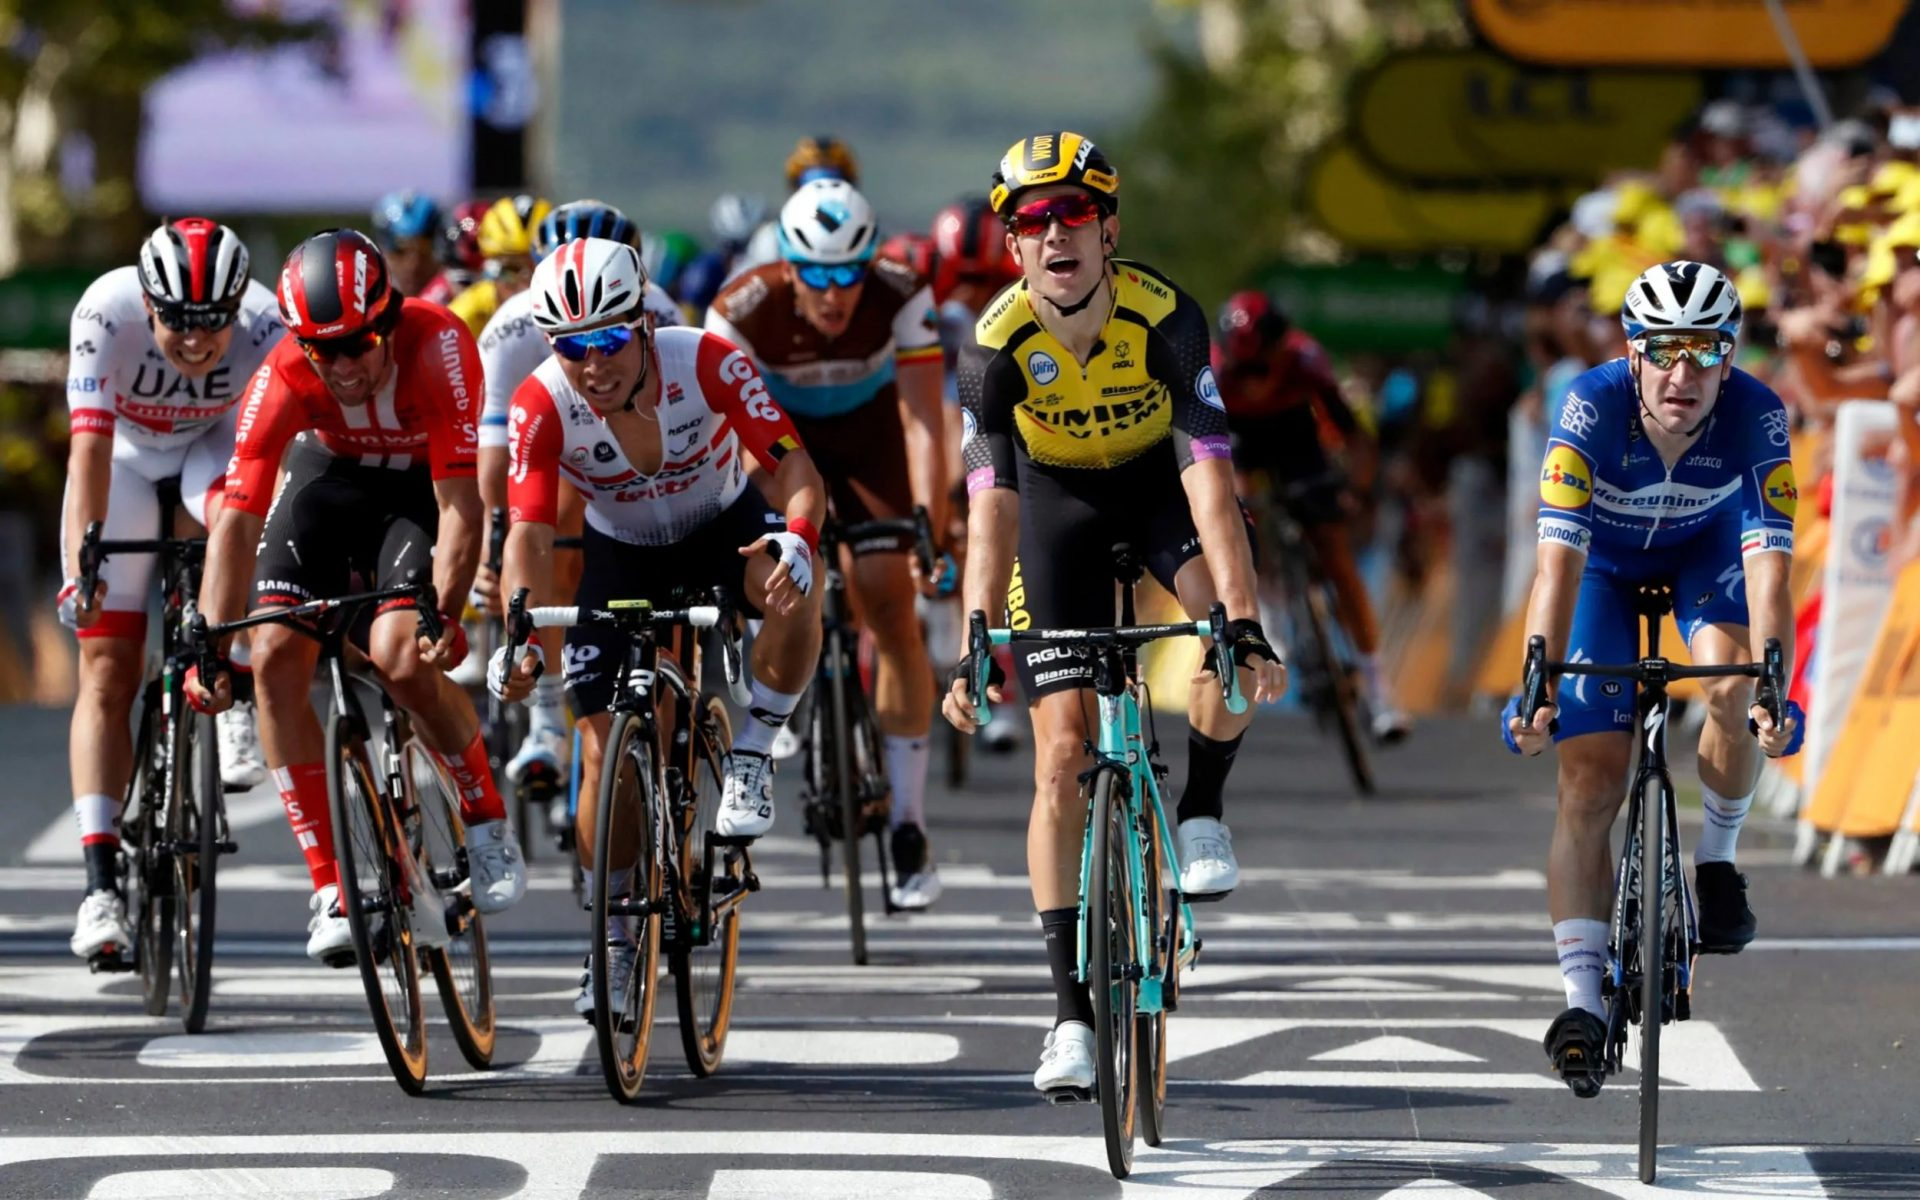 Van Aert Wins 2019 Tour de France Stage 10 and Some Big GC Contenders Lose Time 8